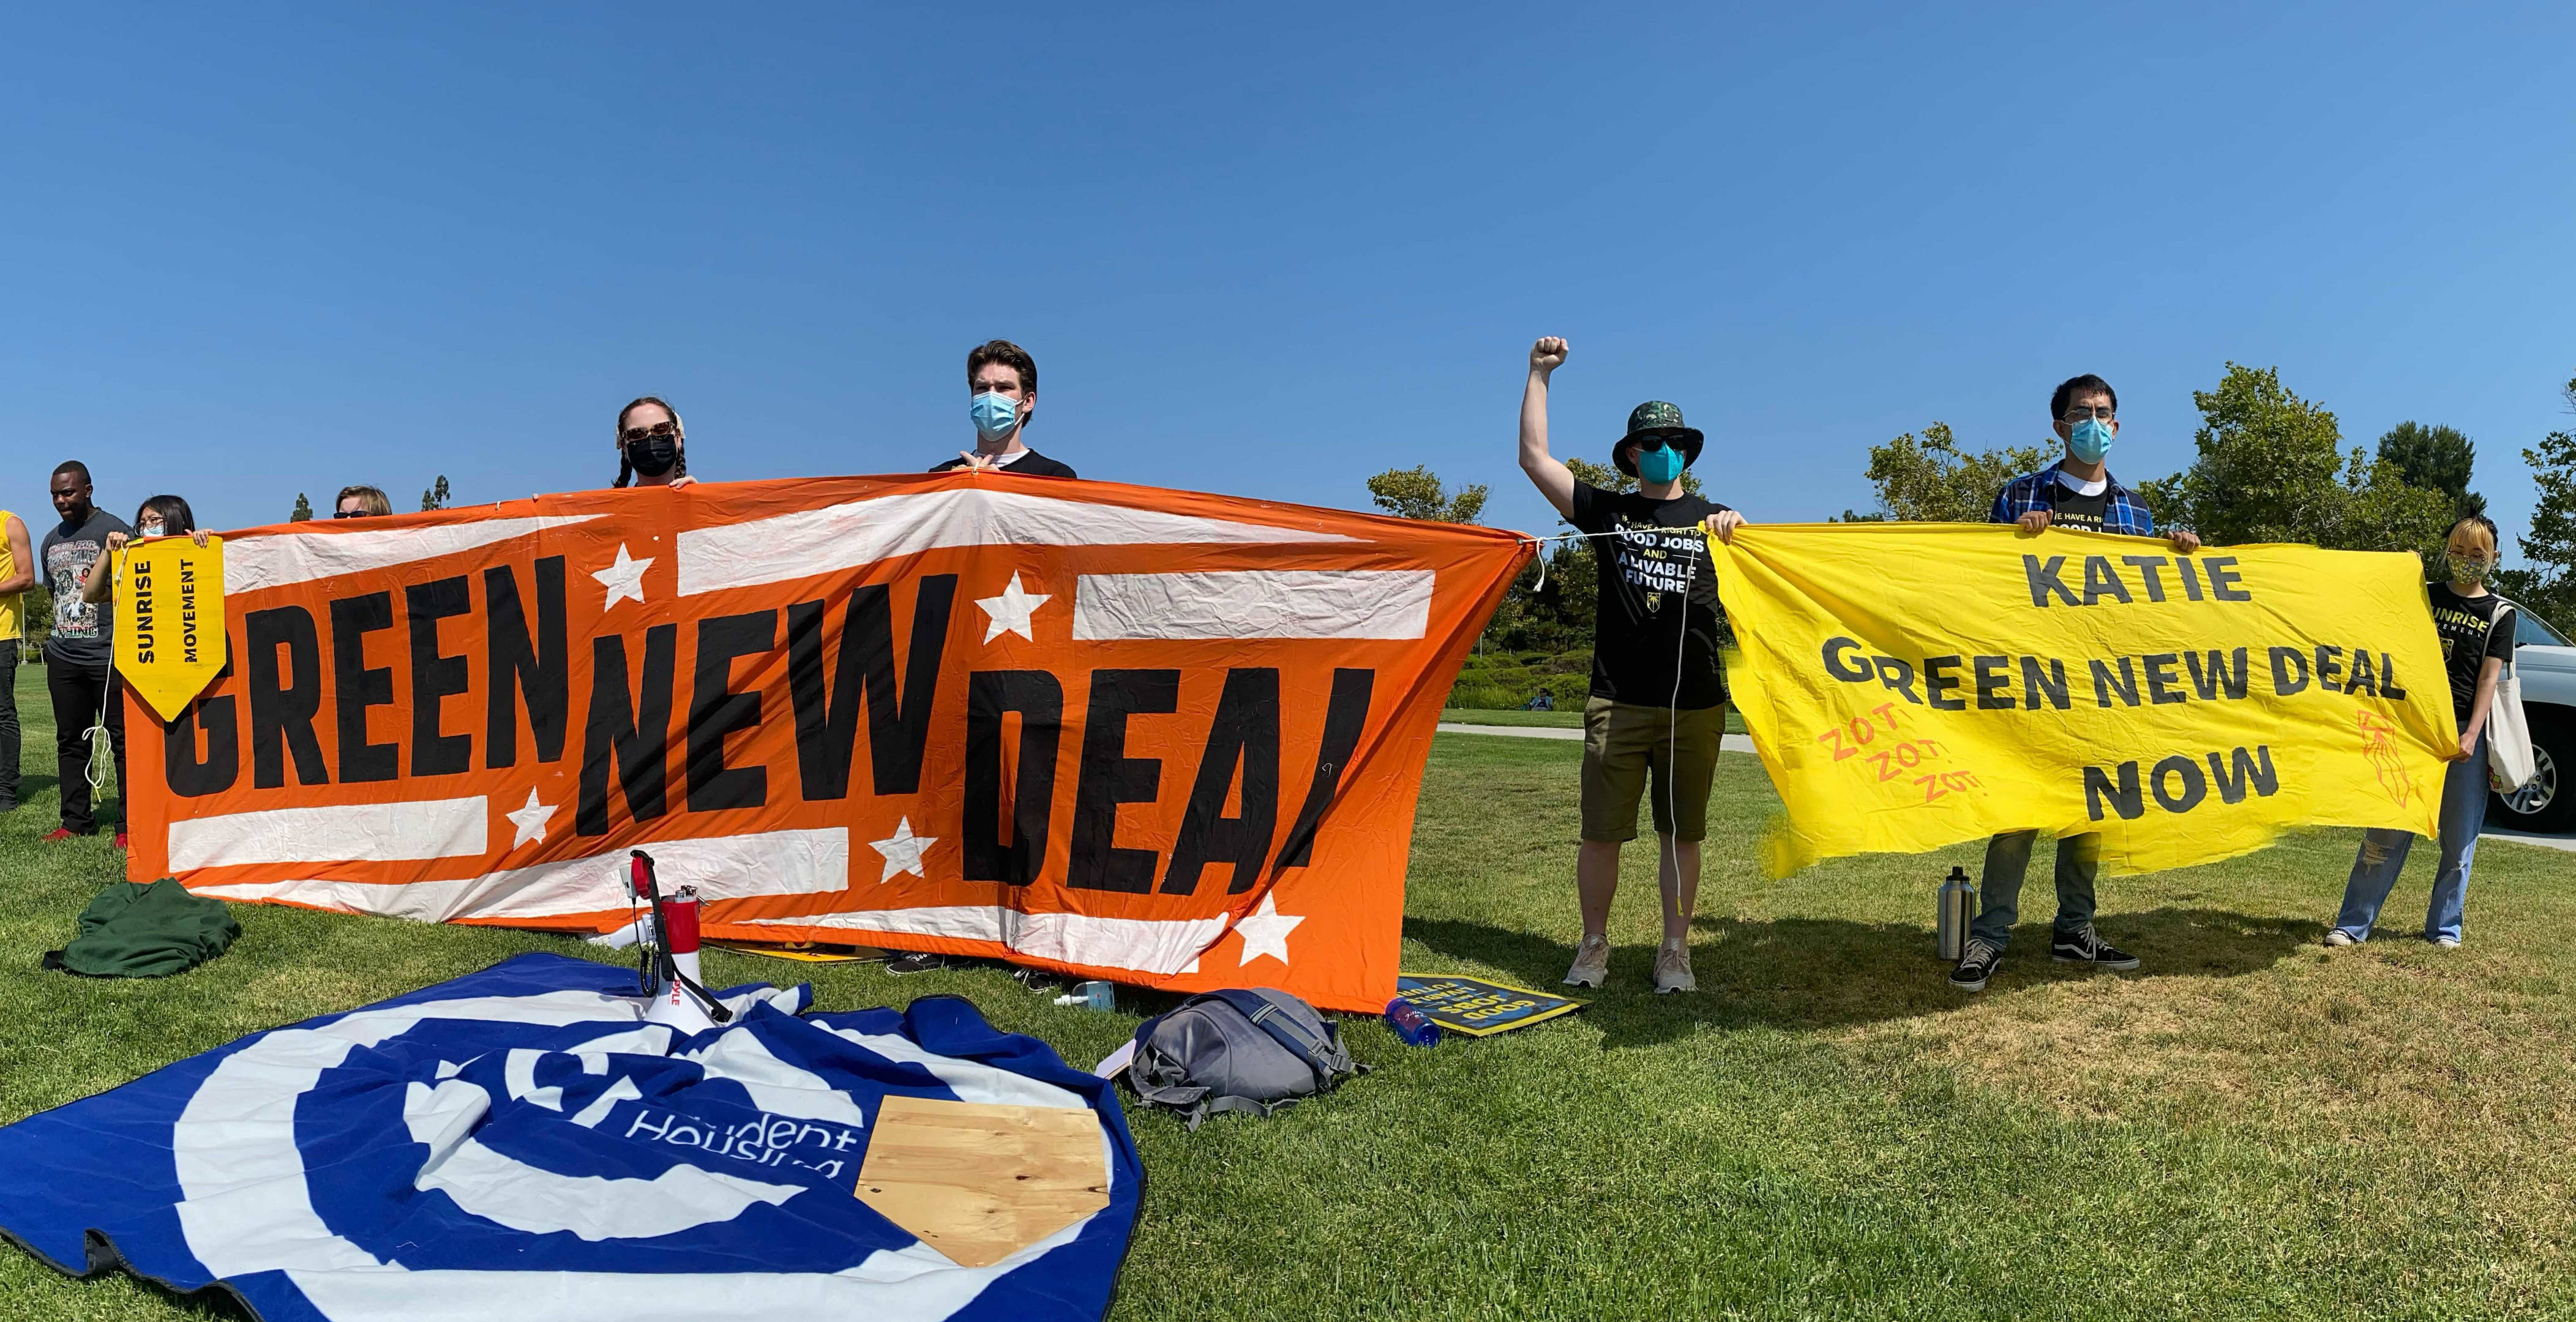 """Sunrise UCI and Orange County Protesters hold up 2 signs outdoors, """"Green New Deal"""" and """"Katie Green New Deal Now"""""""